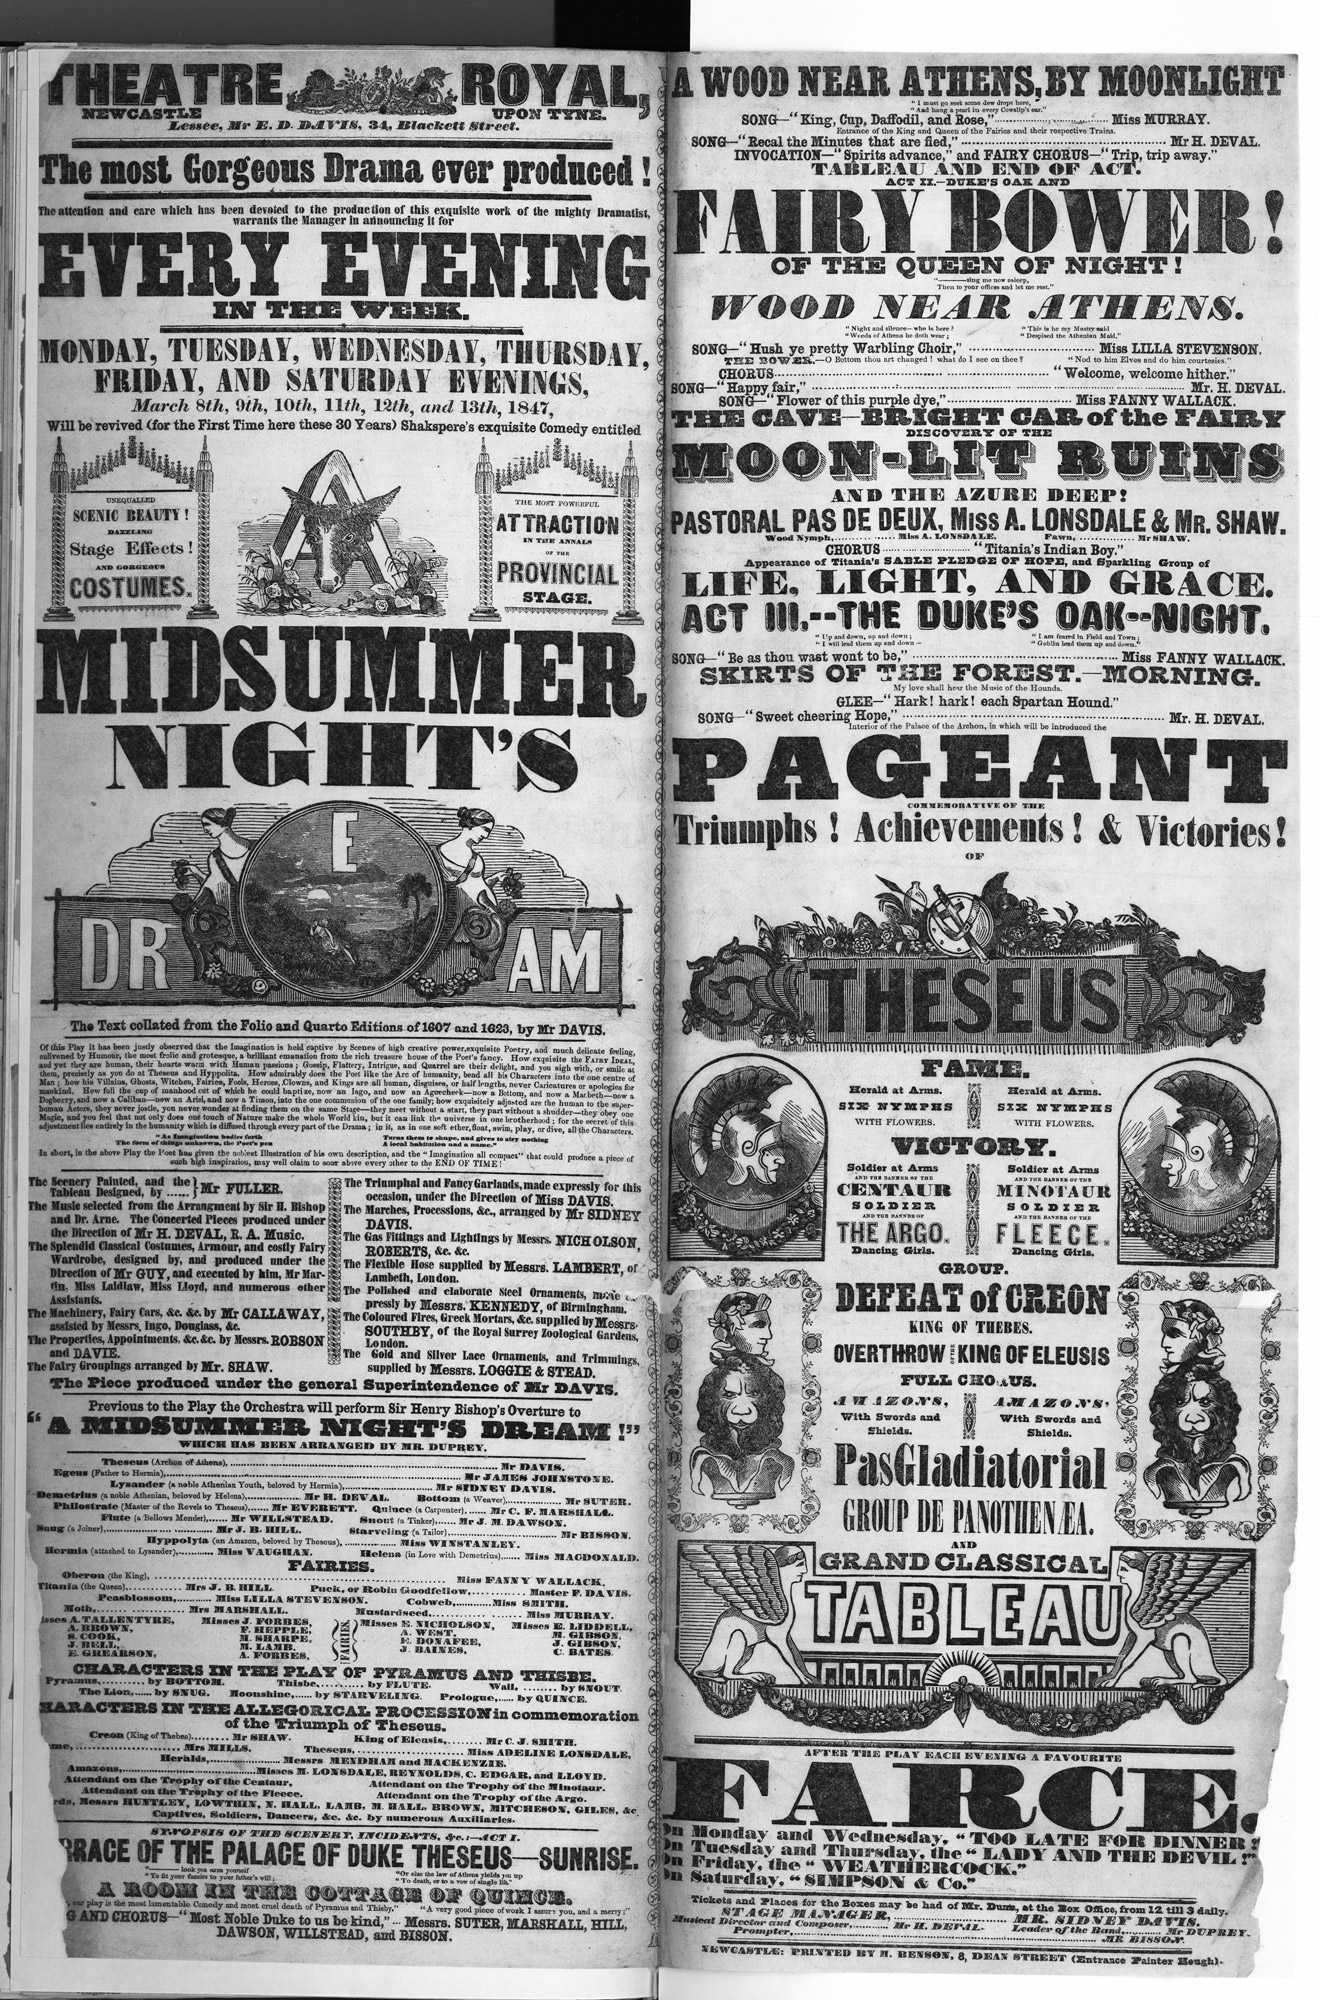 Playbill for A Midsummer Night's Dream, 1847